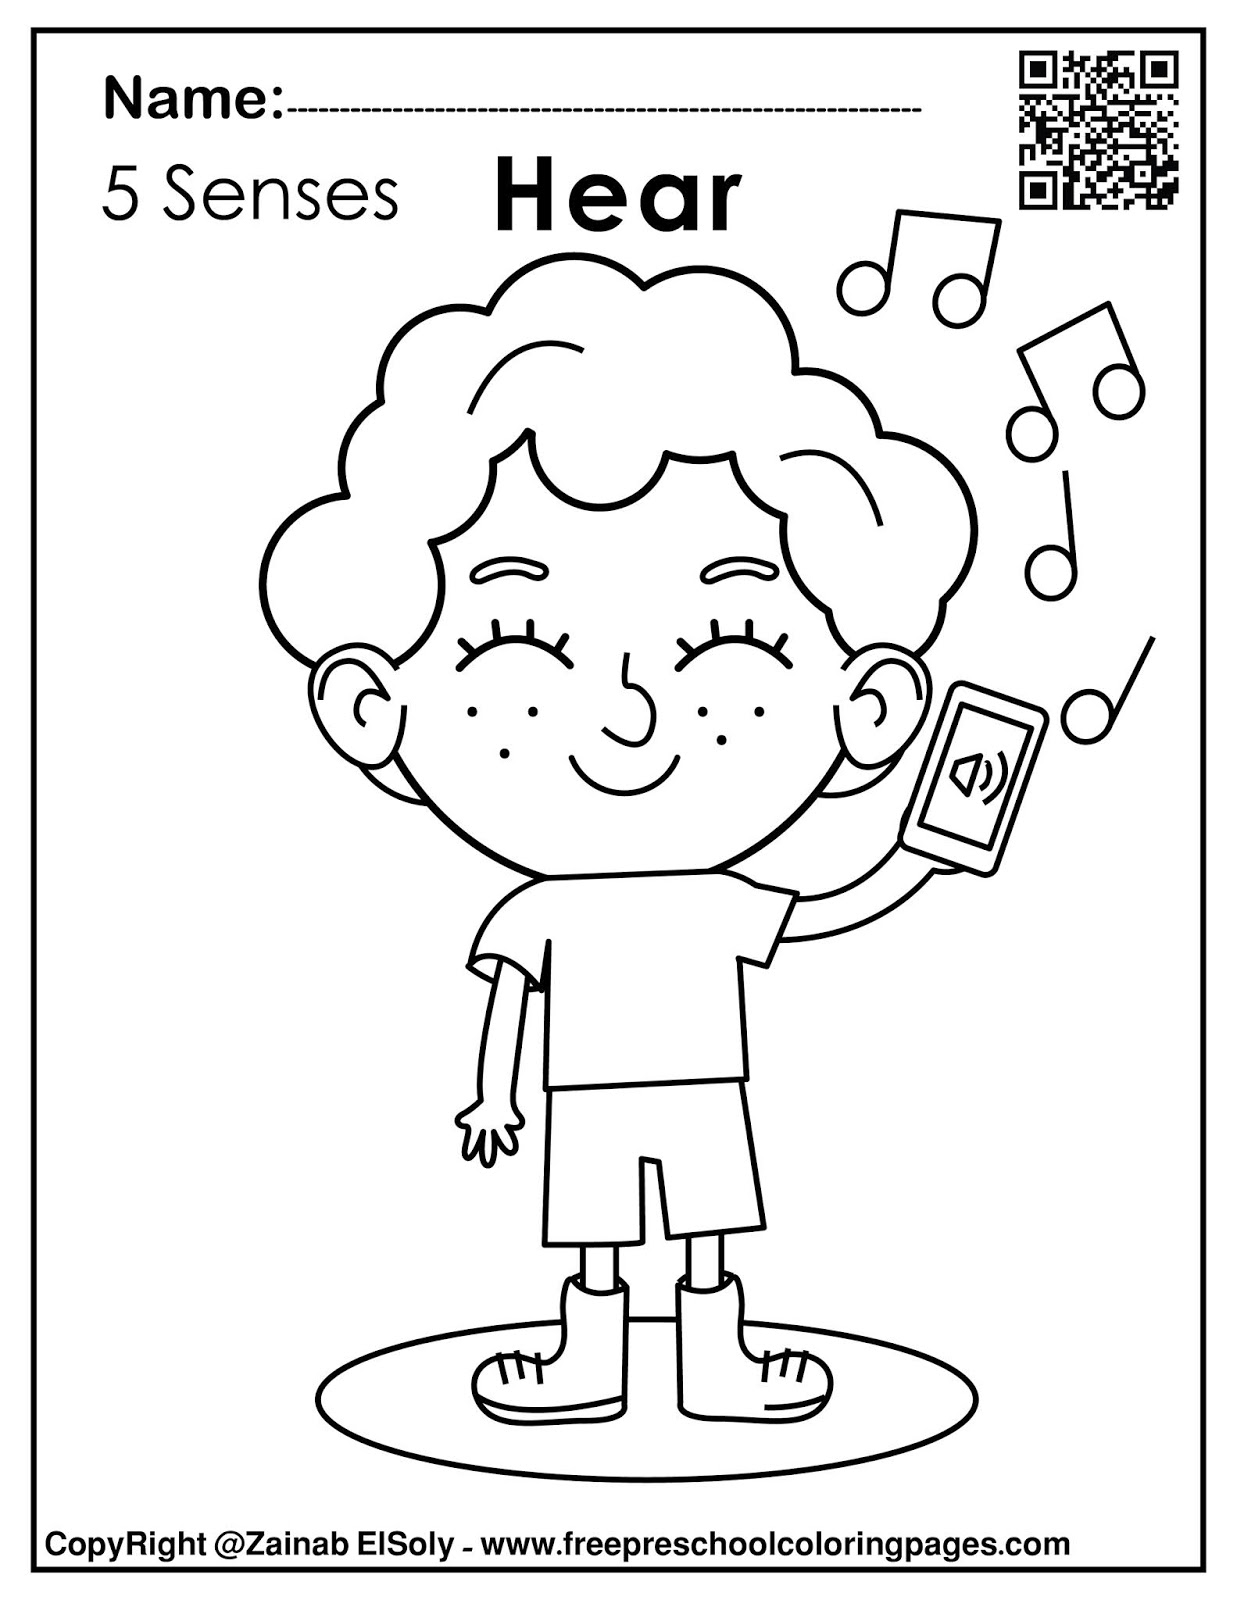 printable 5 senses coloring pages 8 best images of funny faces worksheets how are you coloring 5 senses pages printable